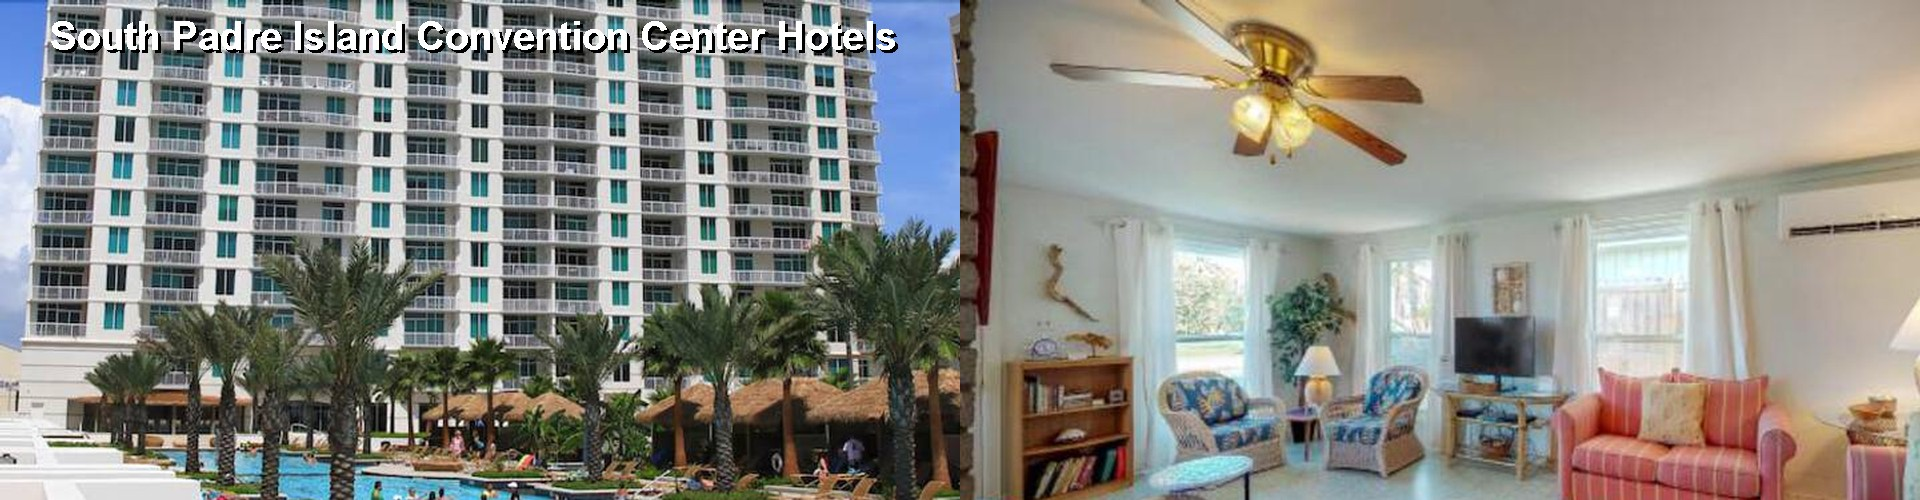 5 Best Hotels near South Padre Island Convention Center